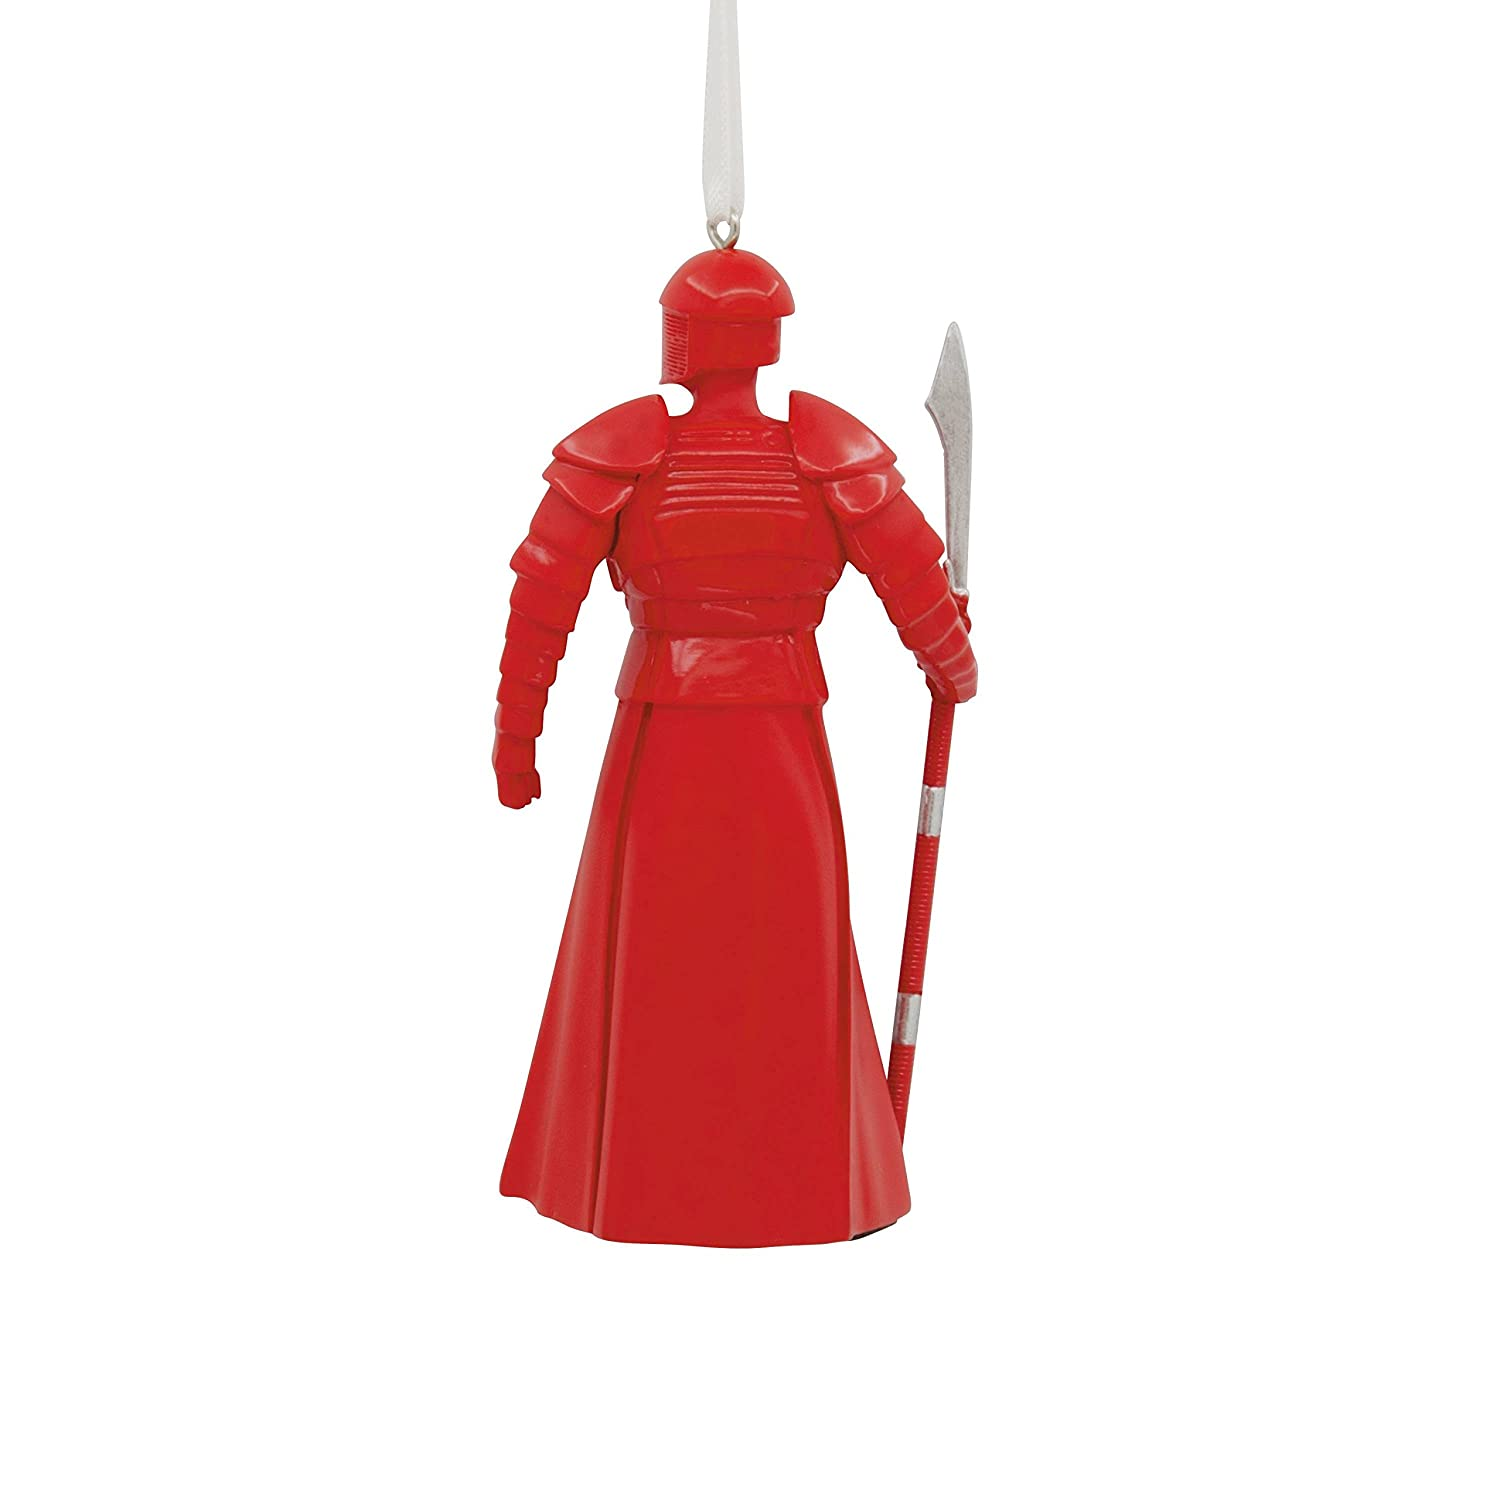 2017 Star Wars RED GUARD Christmas Holiday Ornament